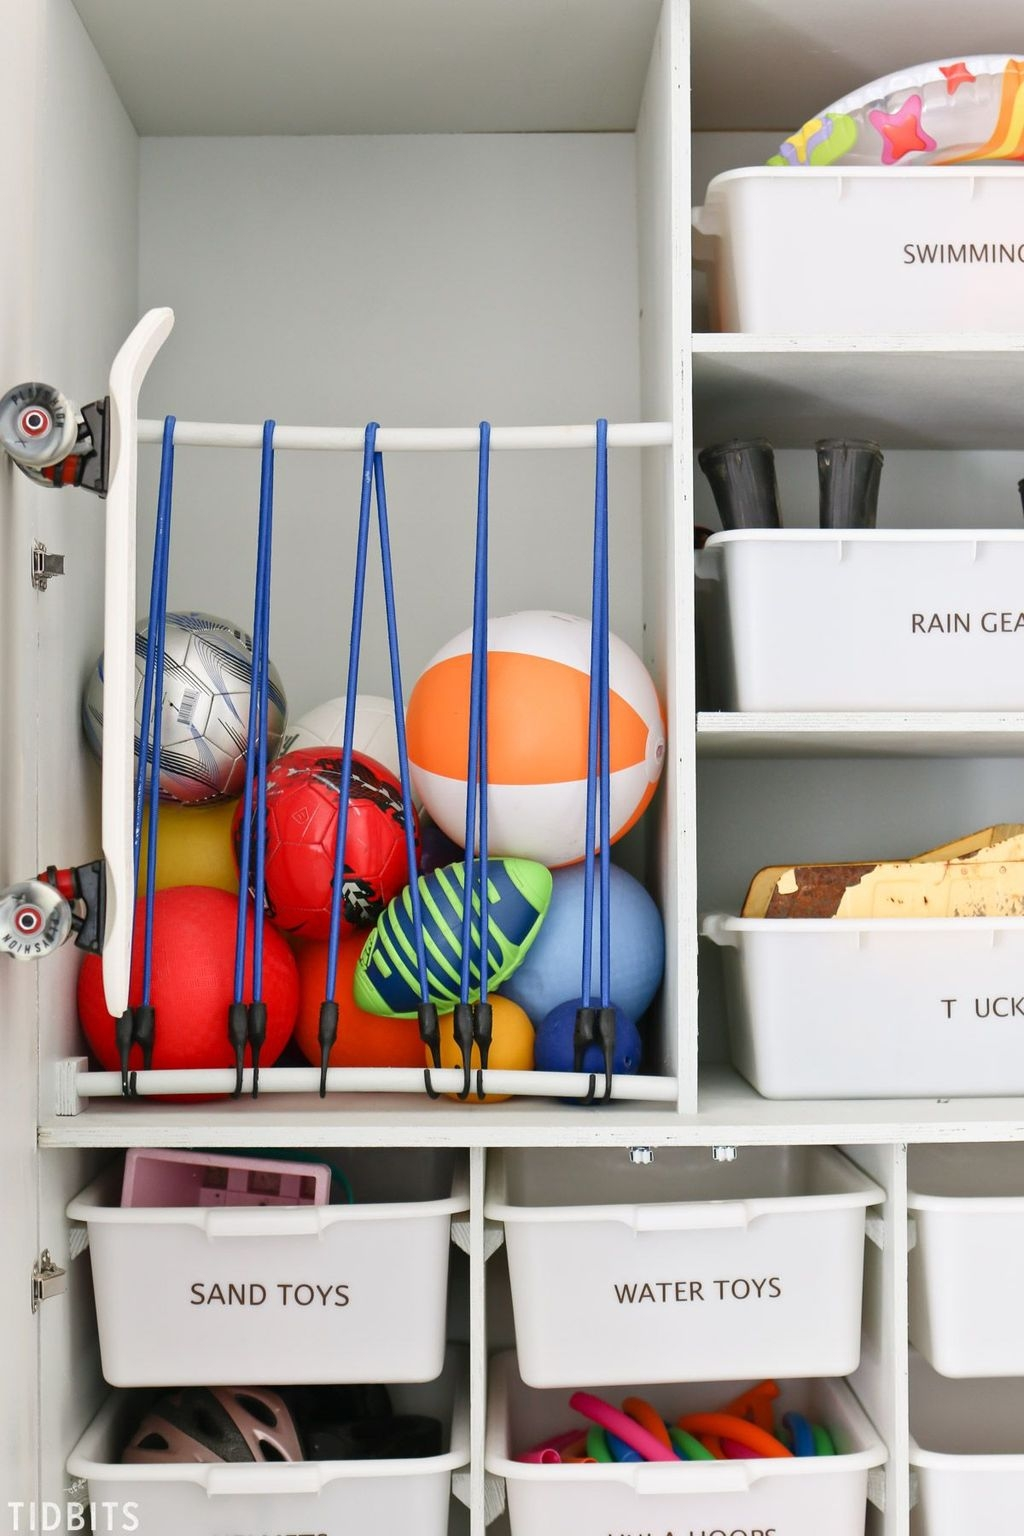 Luxury Toys Storage Organization Ideas47